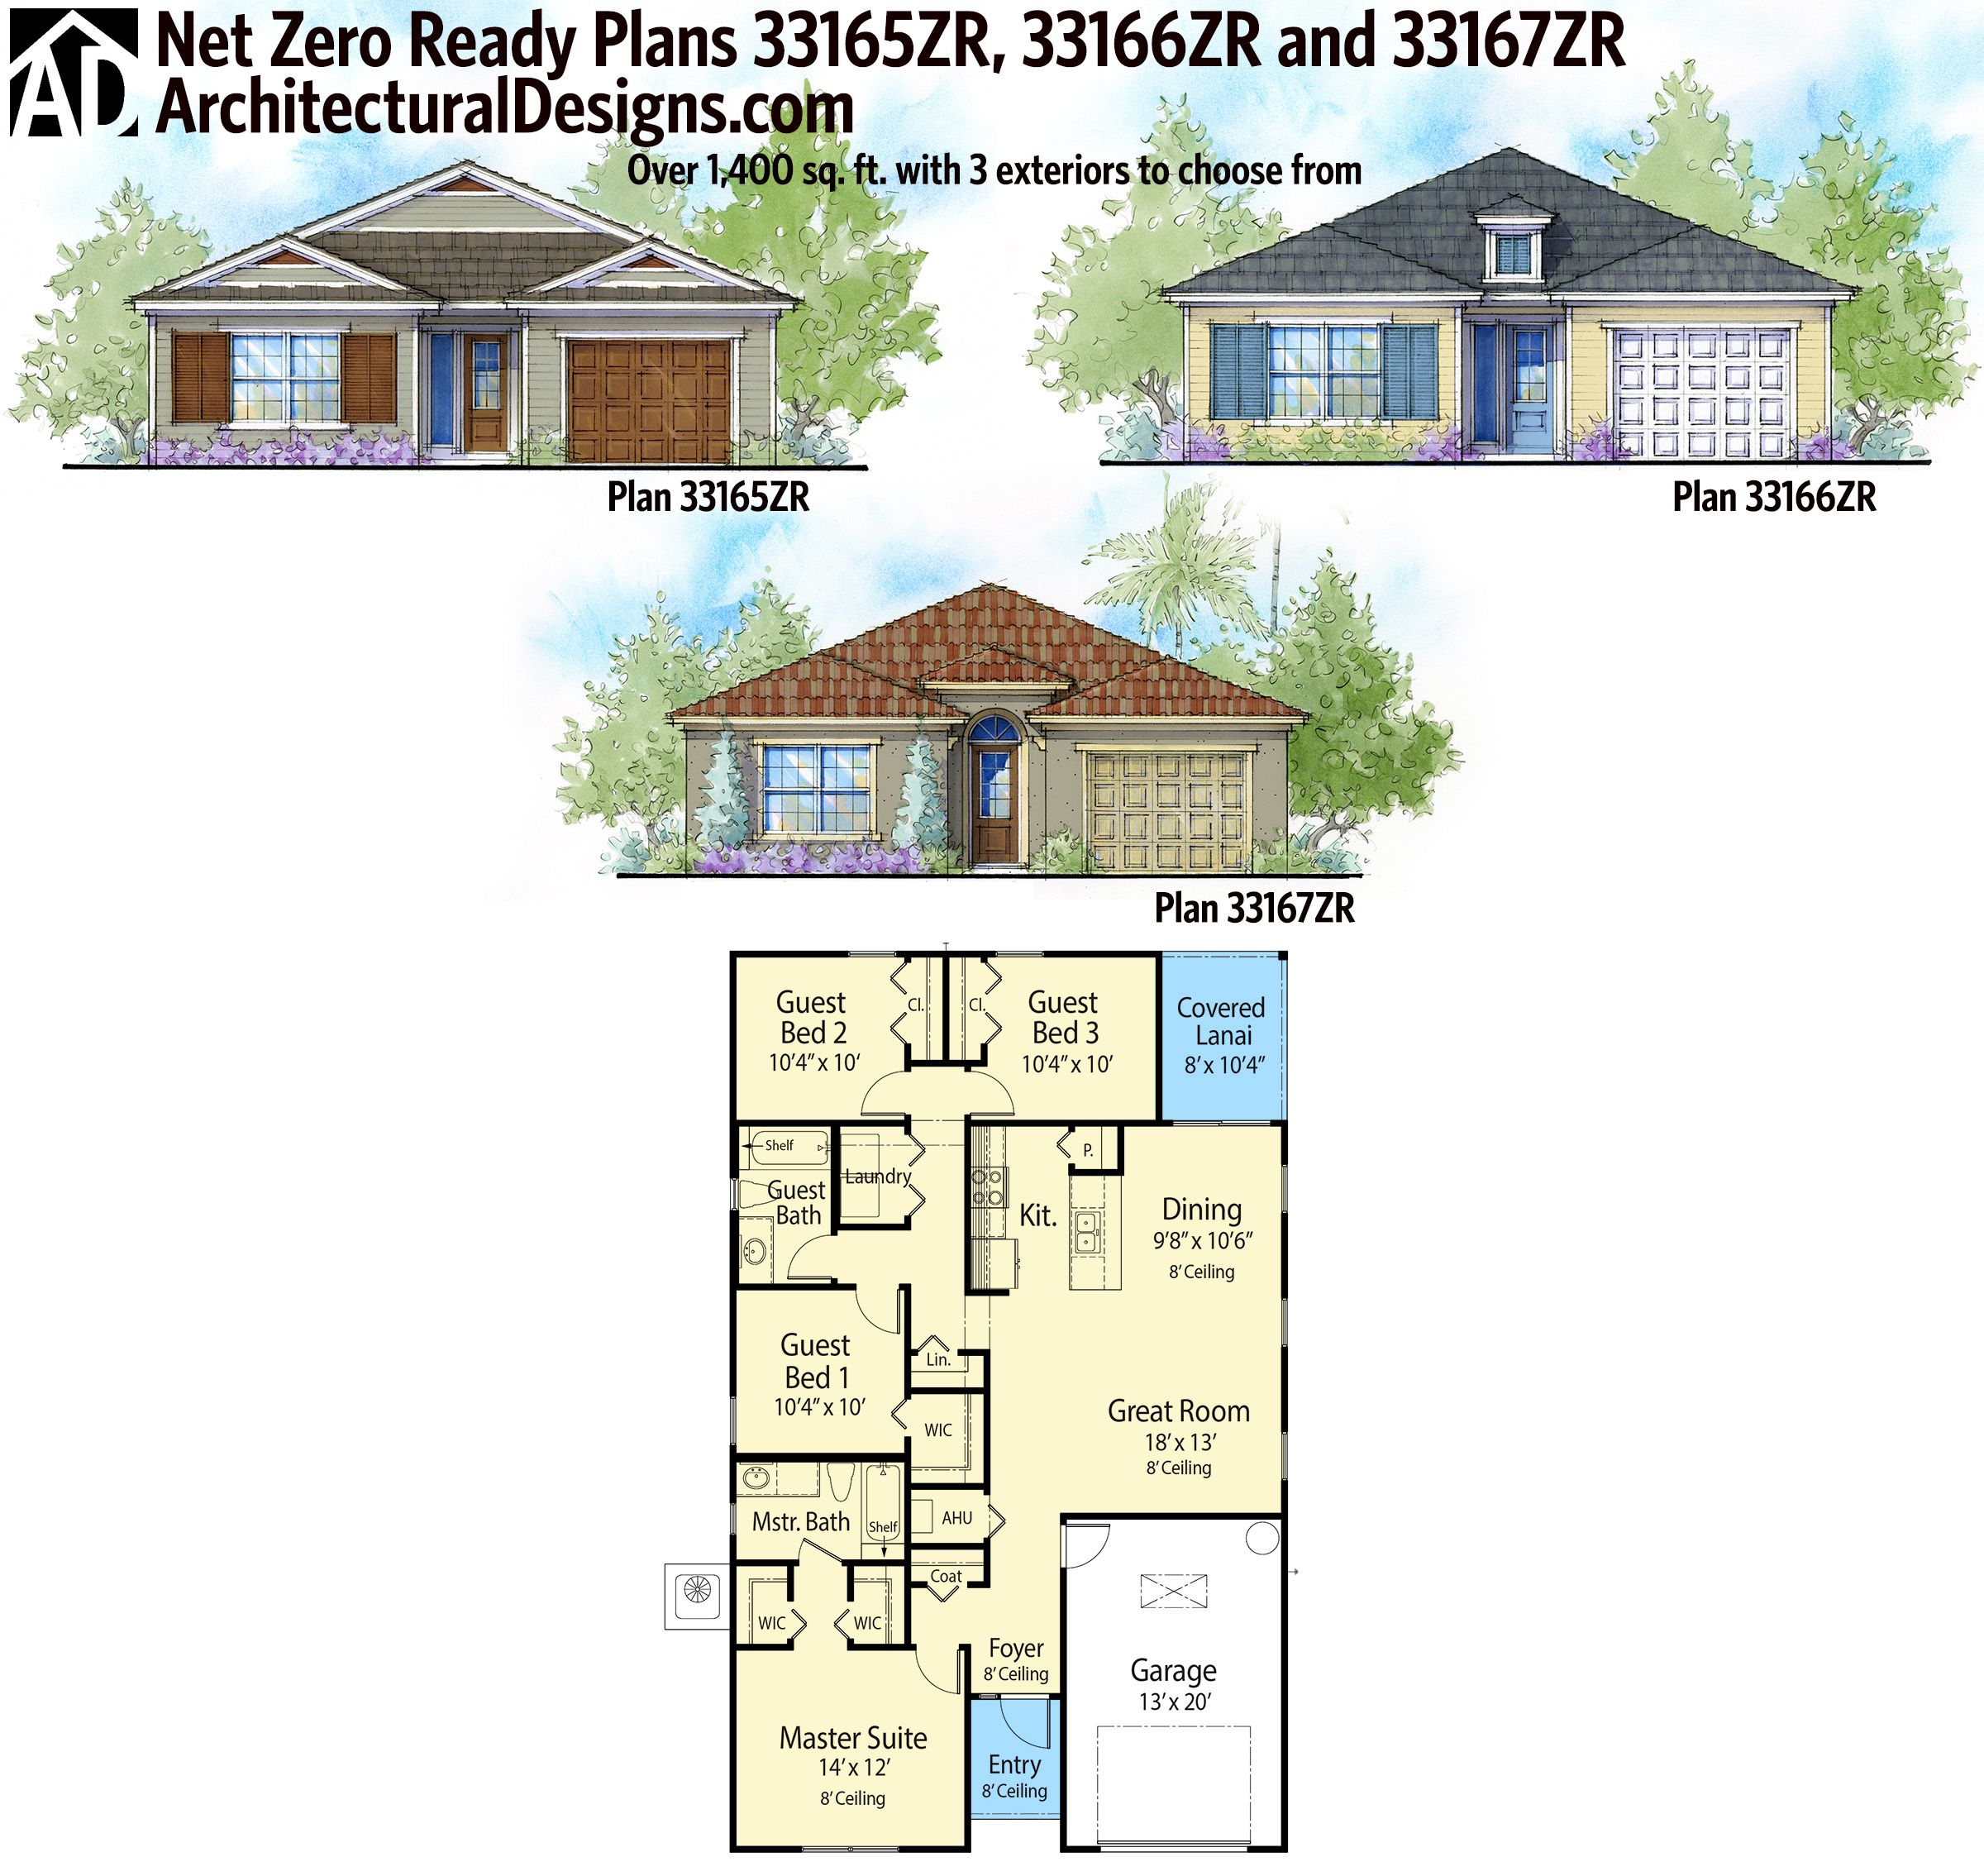 Plan 33165zr 4 bed compact net zero ready house plan for Ready house plans